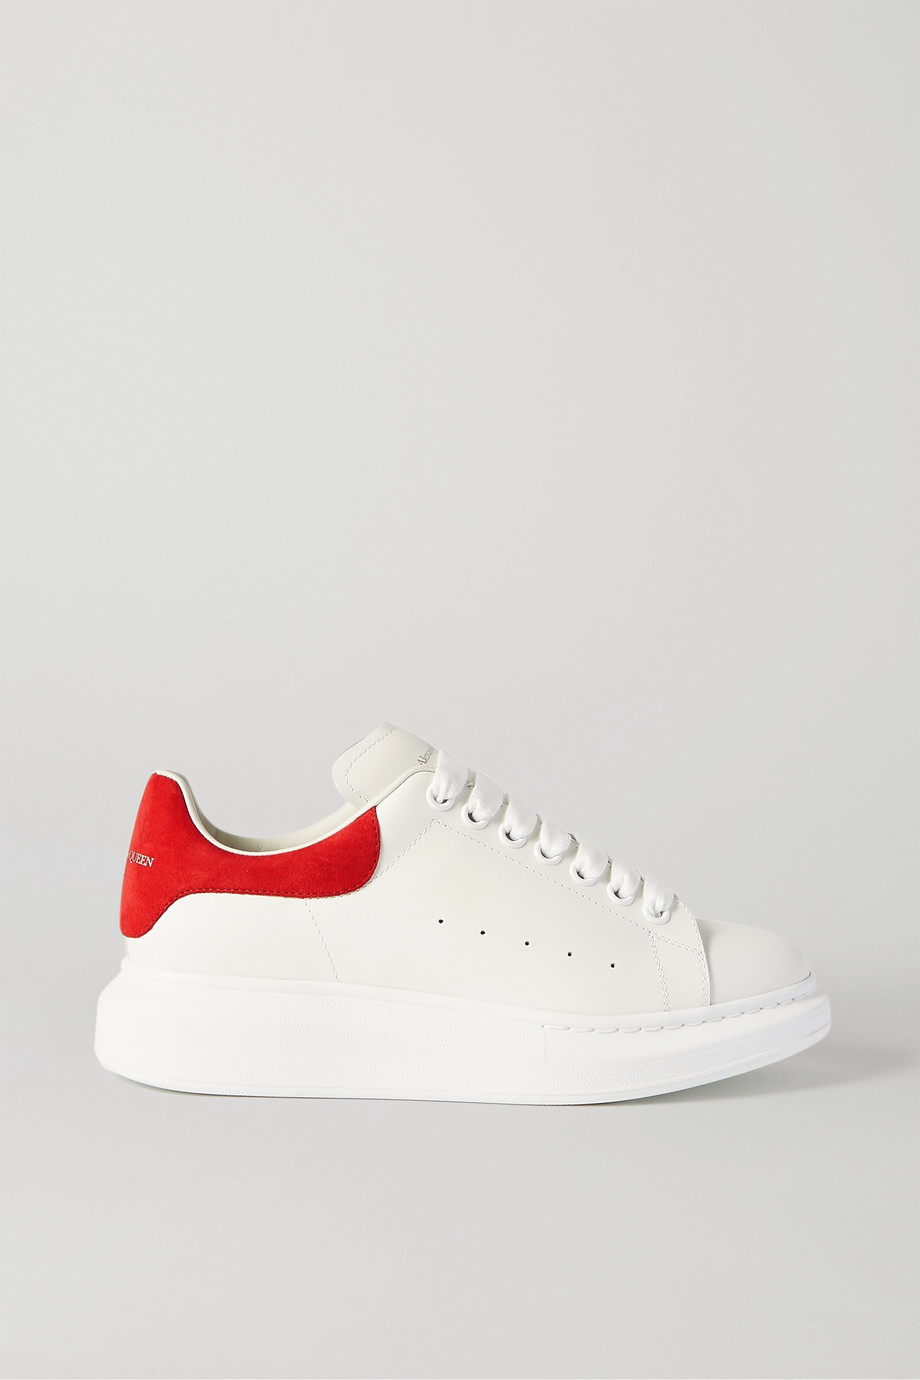 Alexander McQueen Suede-trimmed leather exaggerated-sole sneakers